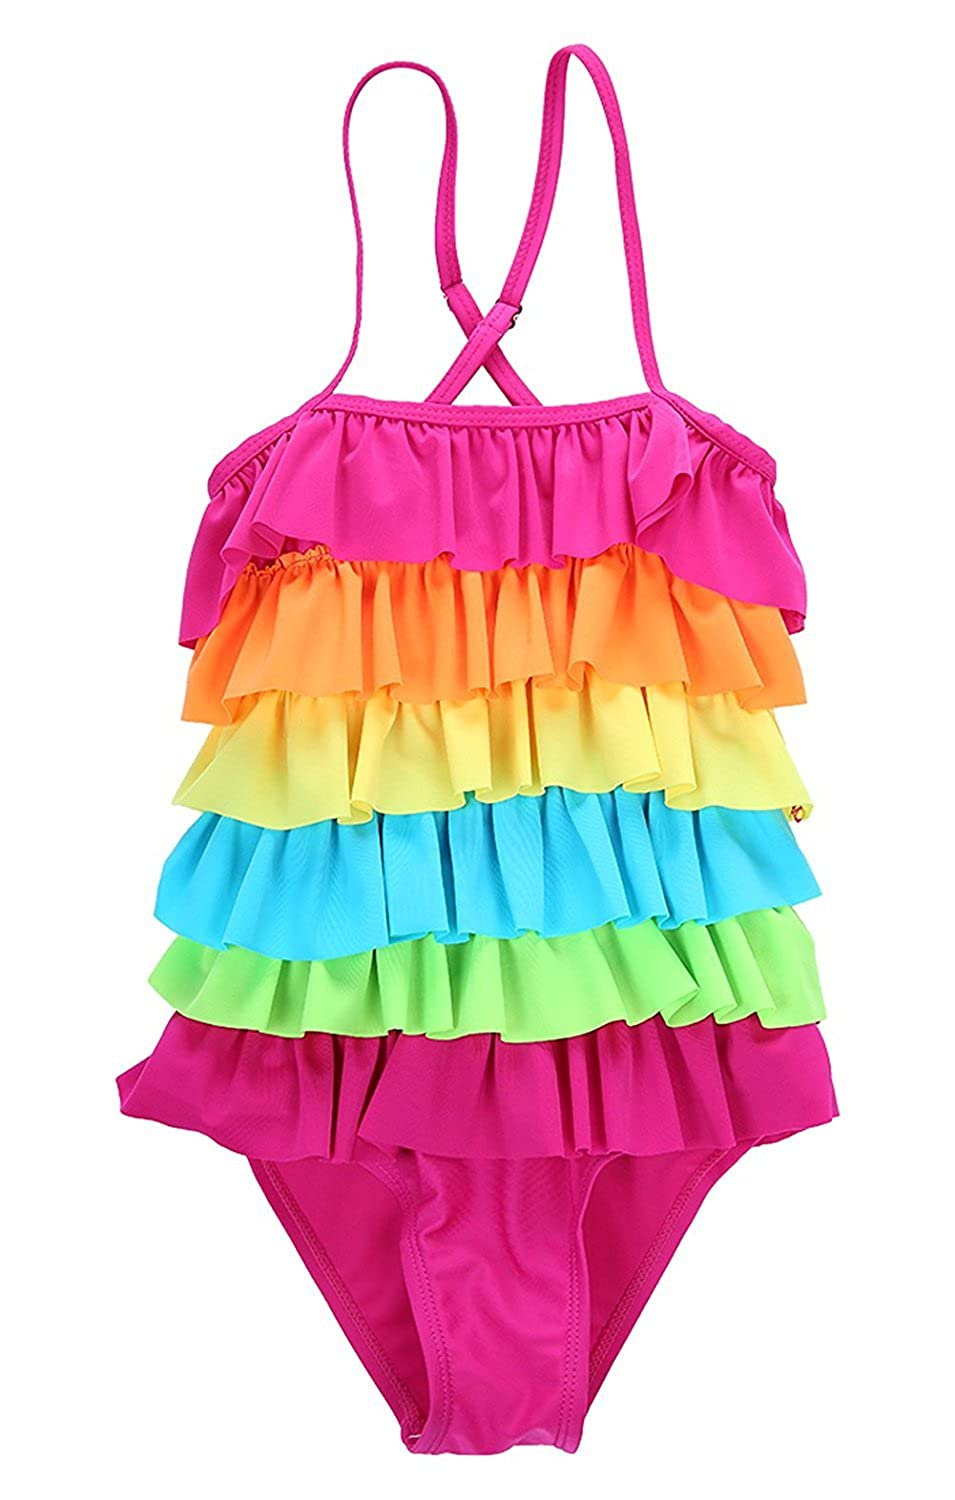 Kids Baby Girls Cute Rainbow One Piece Ruffle Swimsuit Swimwear Beach Wear